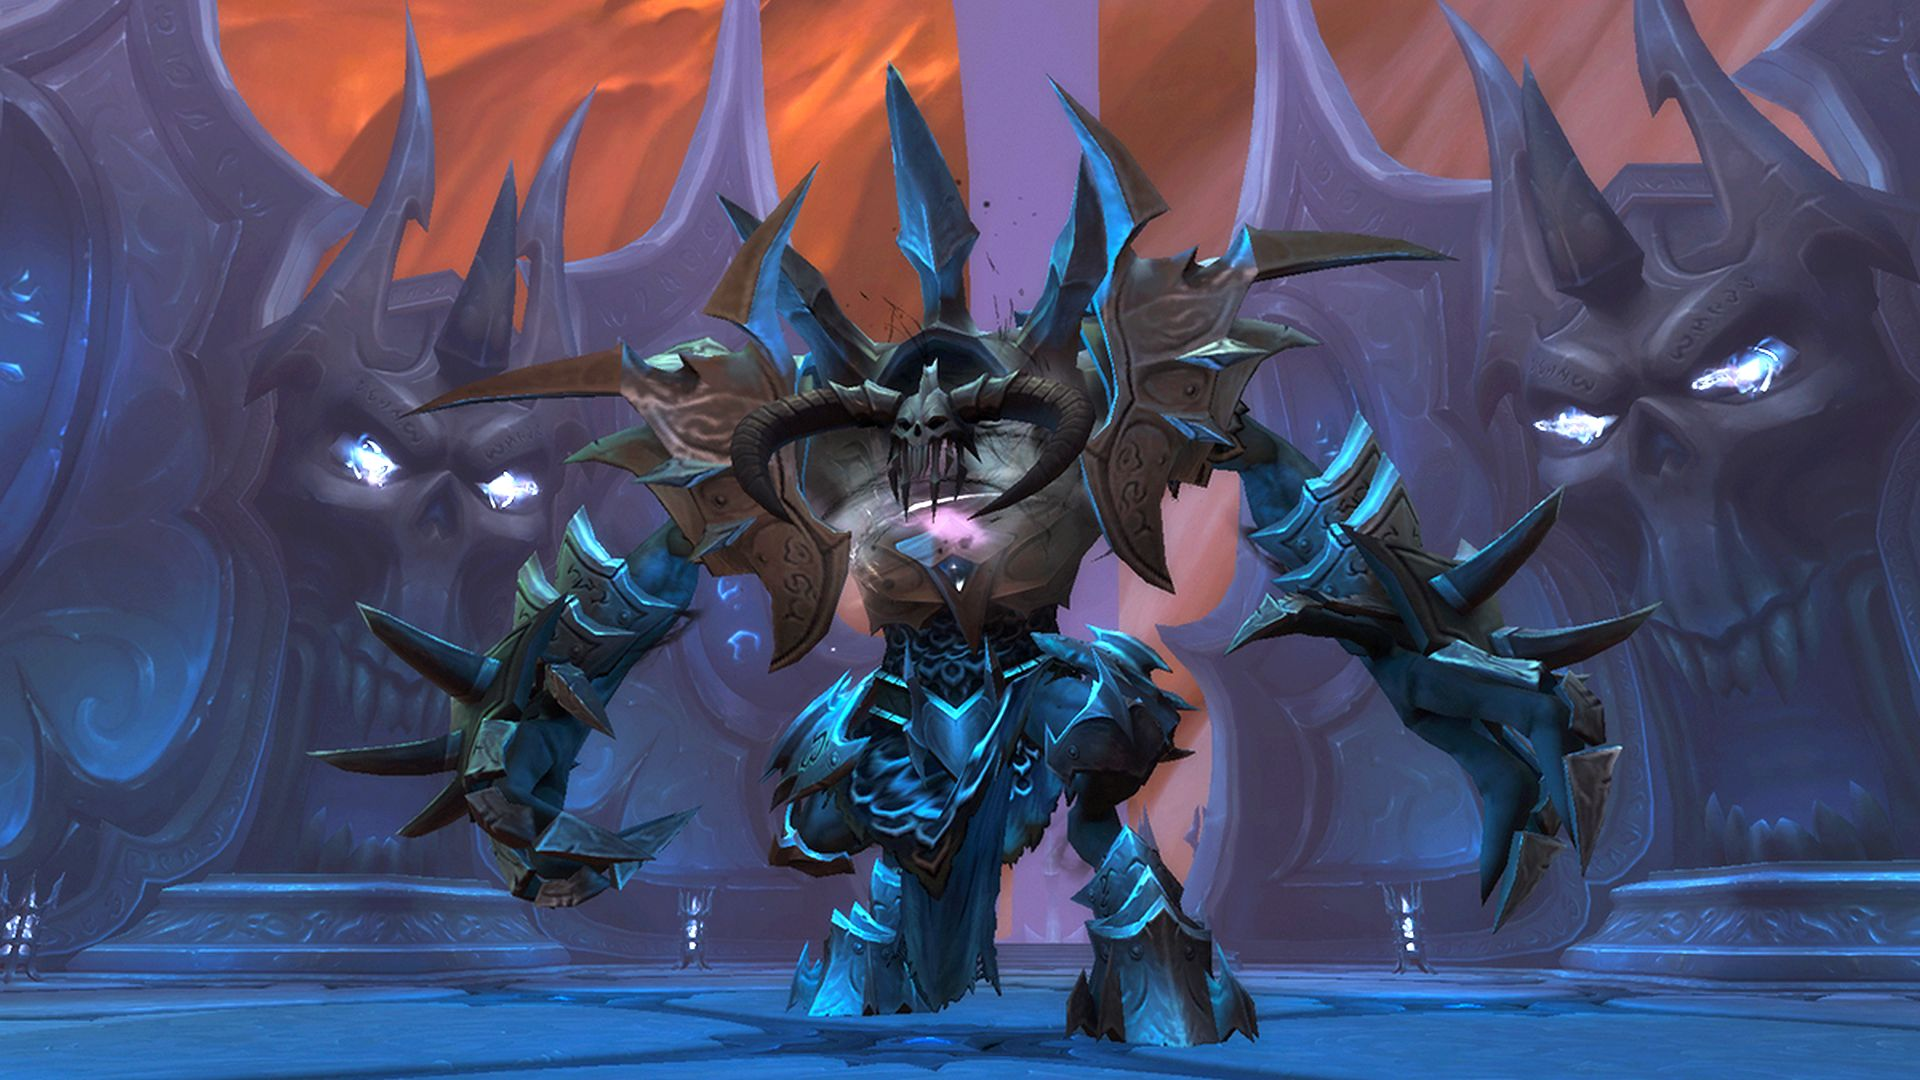 WoW's Great Vault has been hit with a loot bug, but a fix is on the way